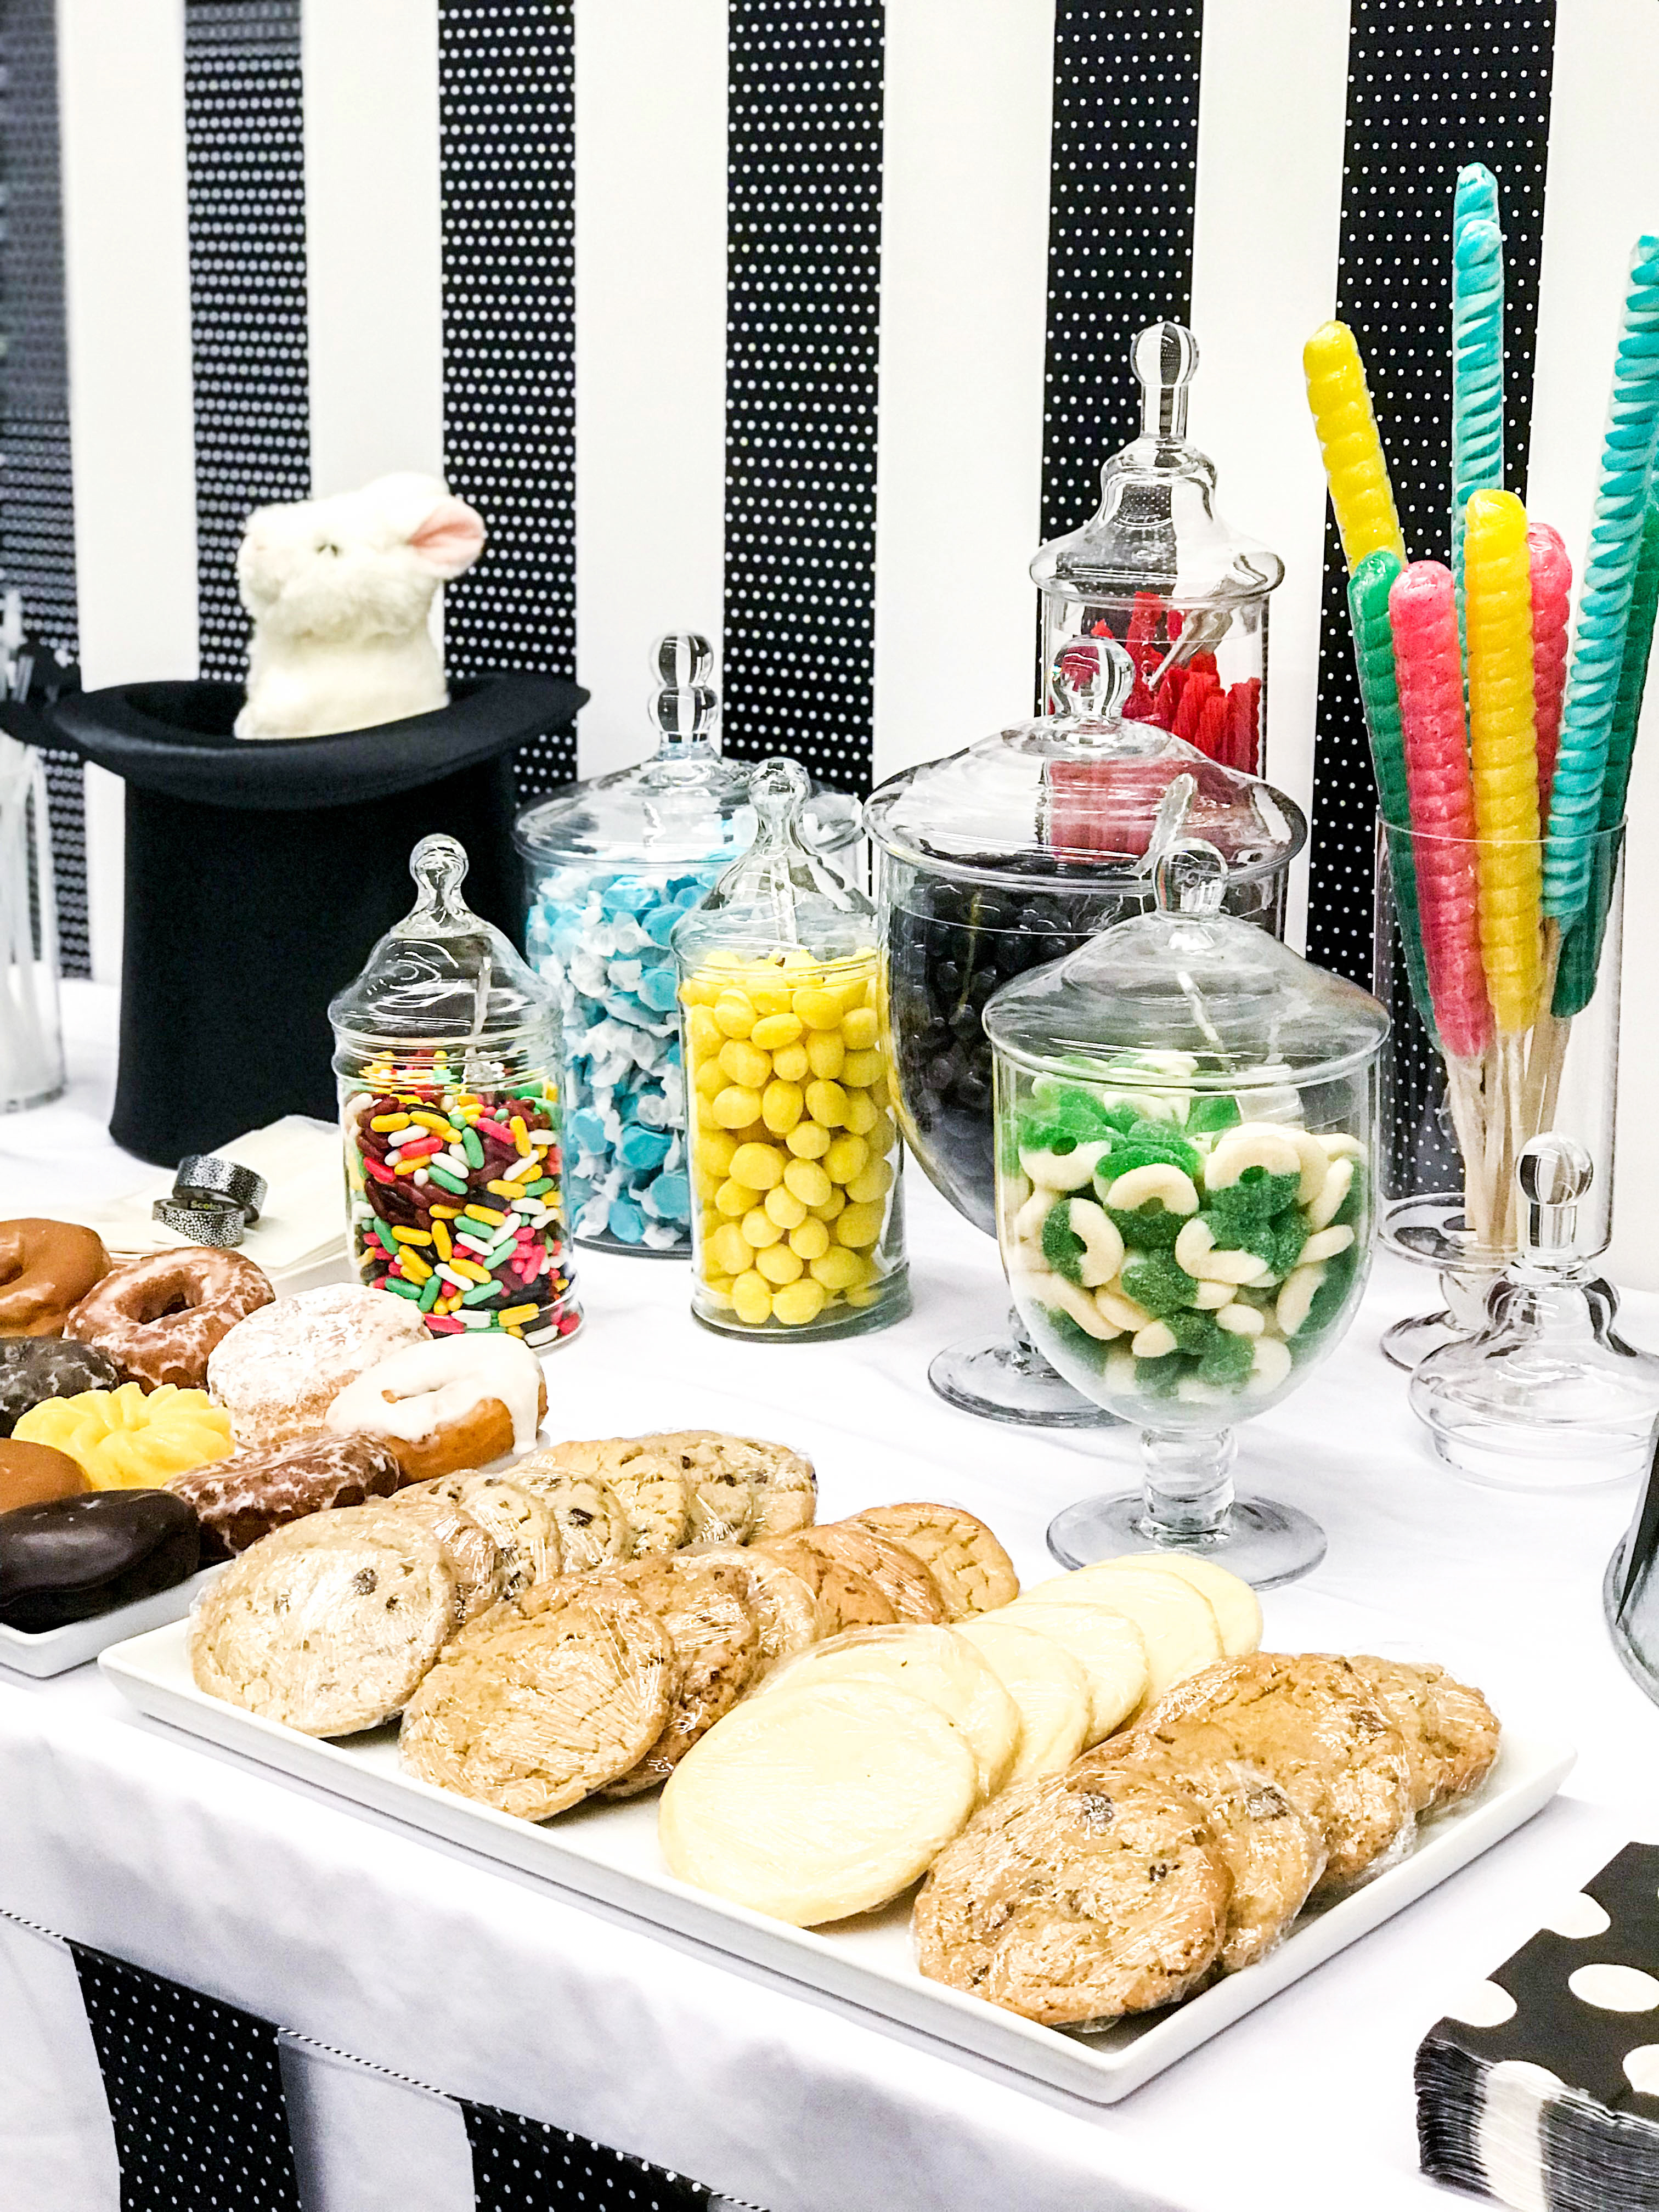 Greatest Showman Party Ideas